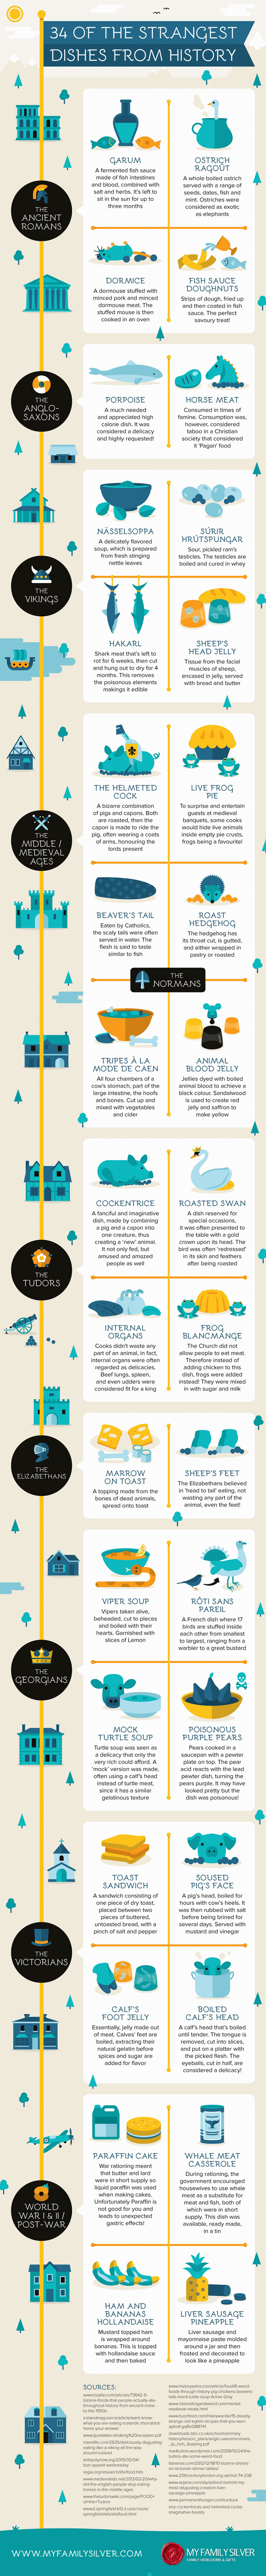 34 of The Weirdest Dishes From History Infographic